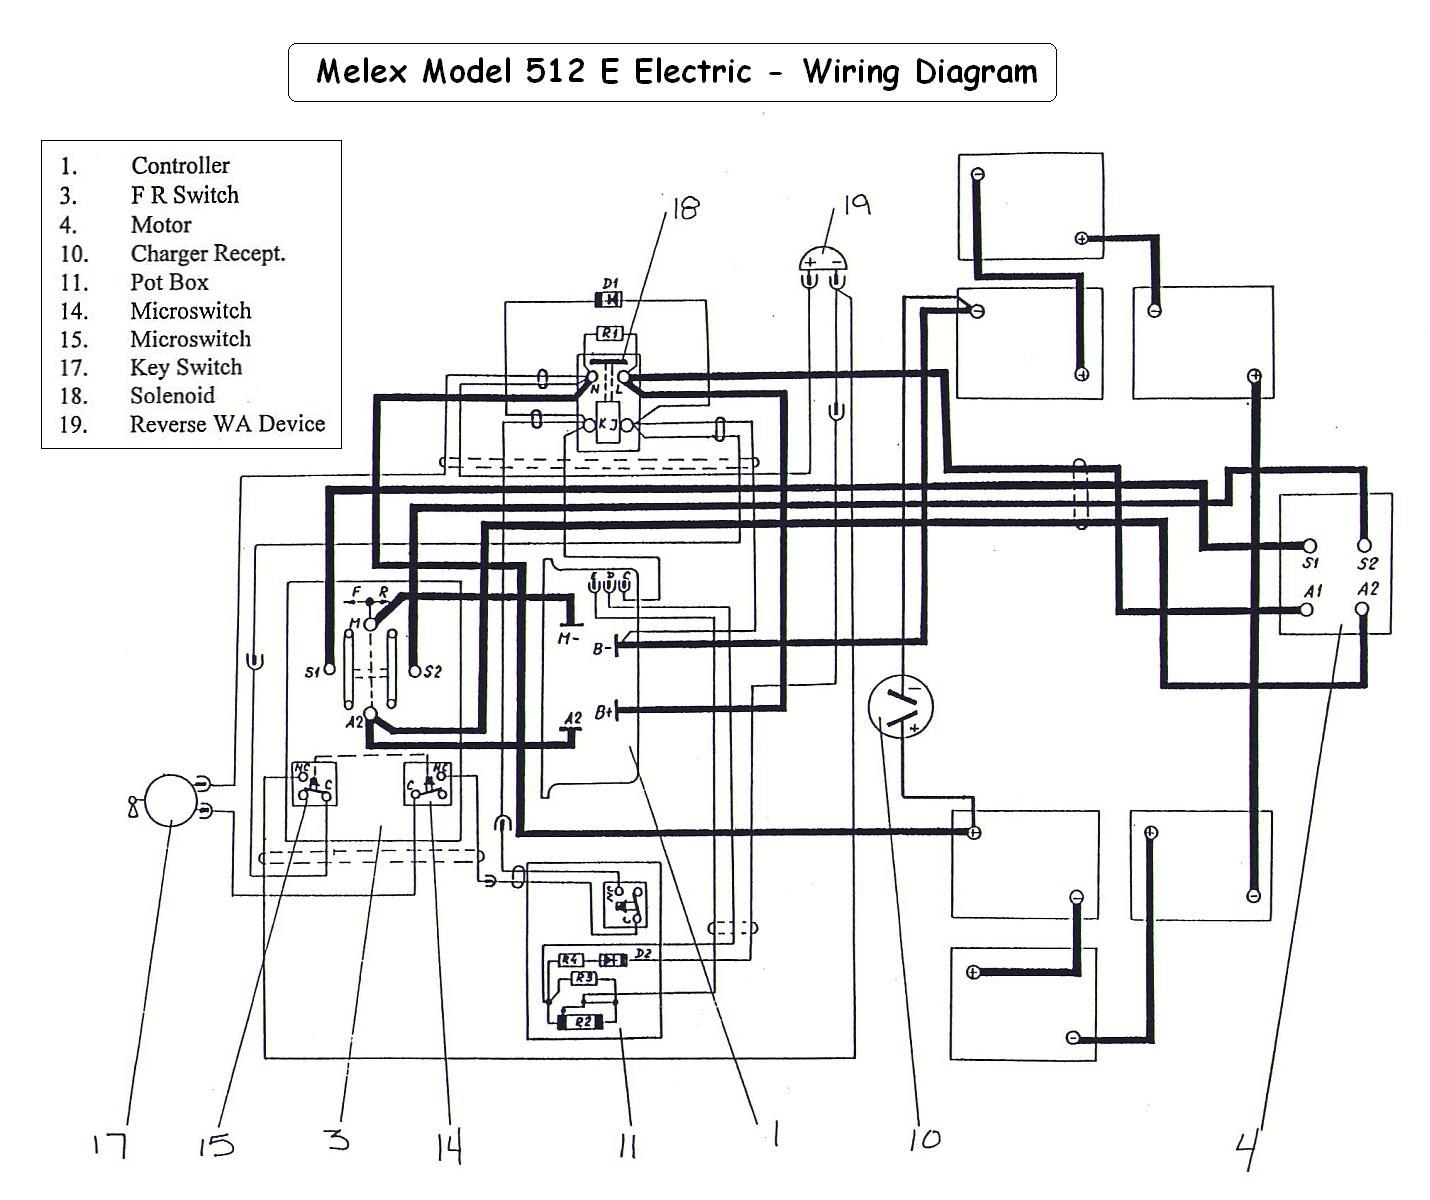 Melex512E_wiring_diagram vintagegolfcartparts com golf car wiring diagram at nearapp.co